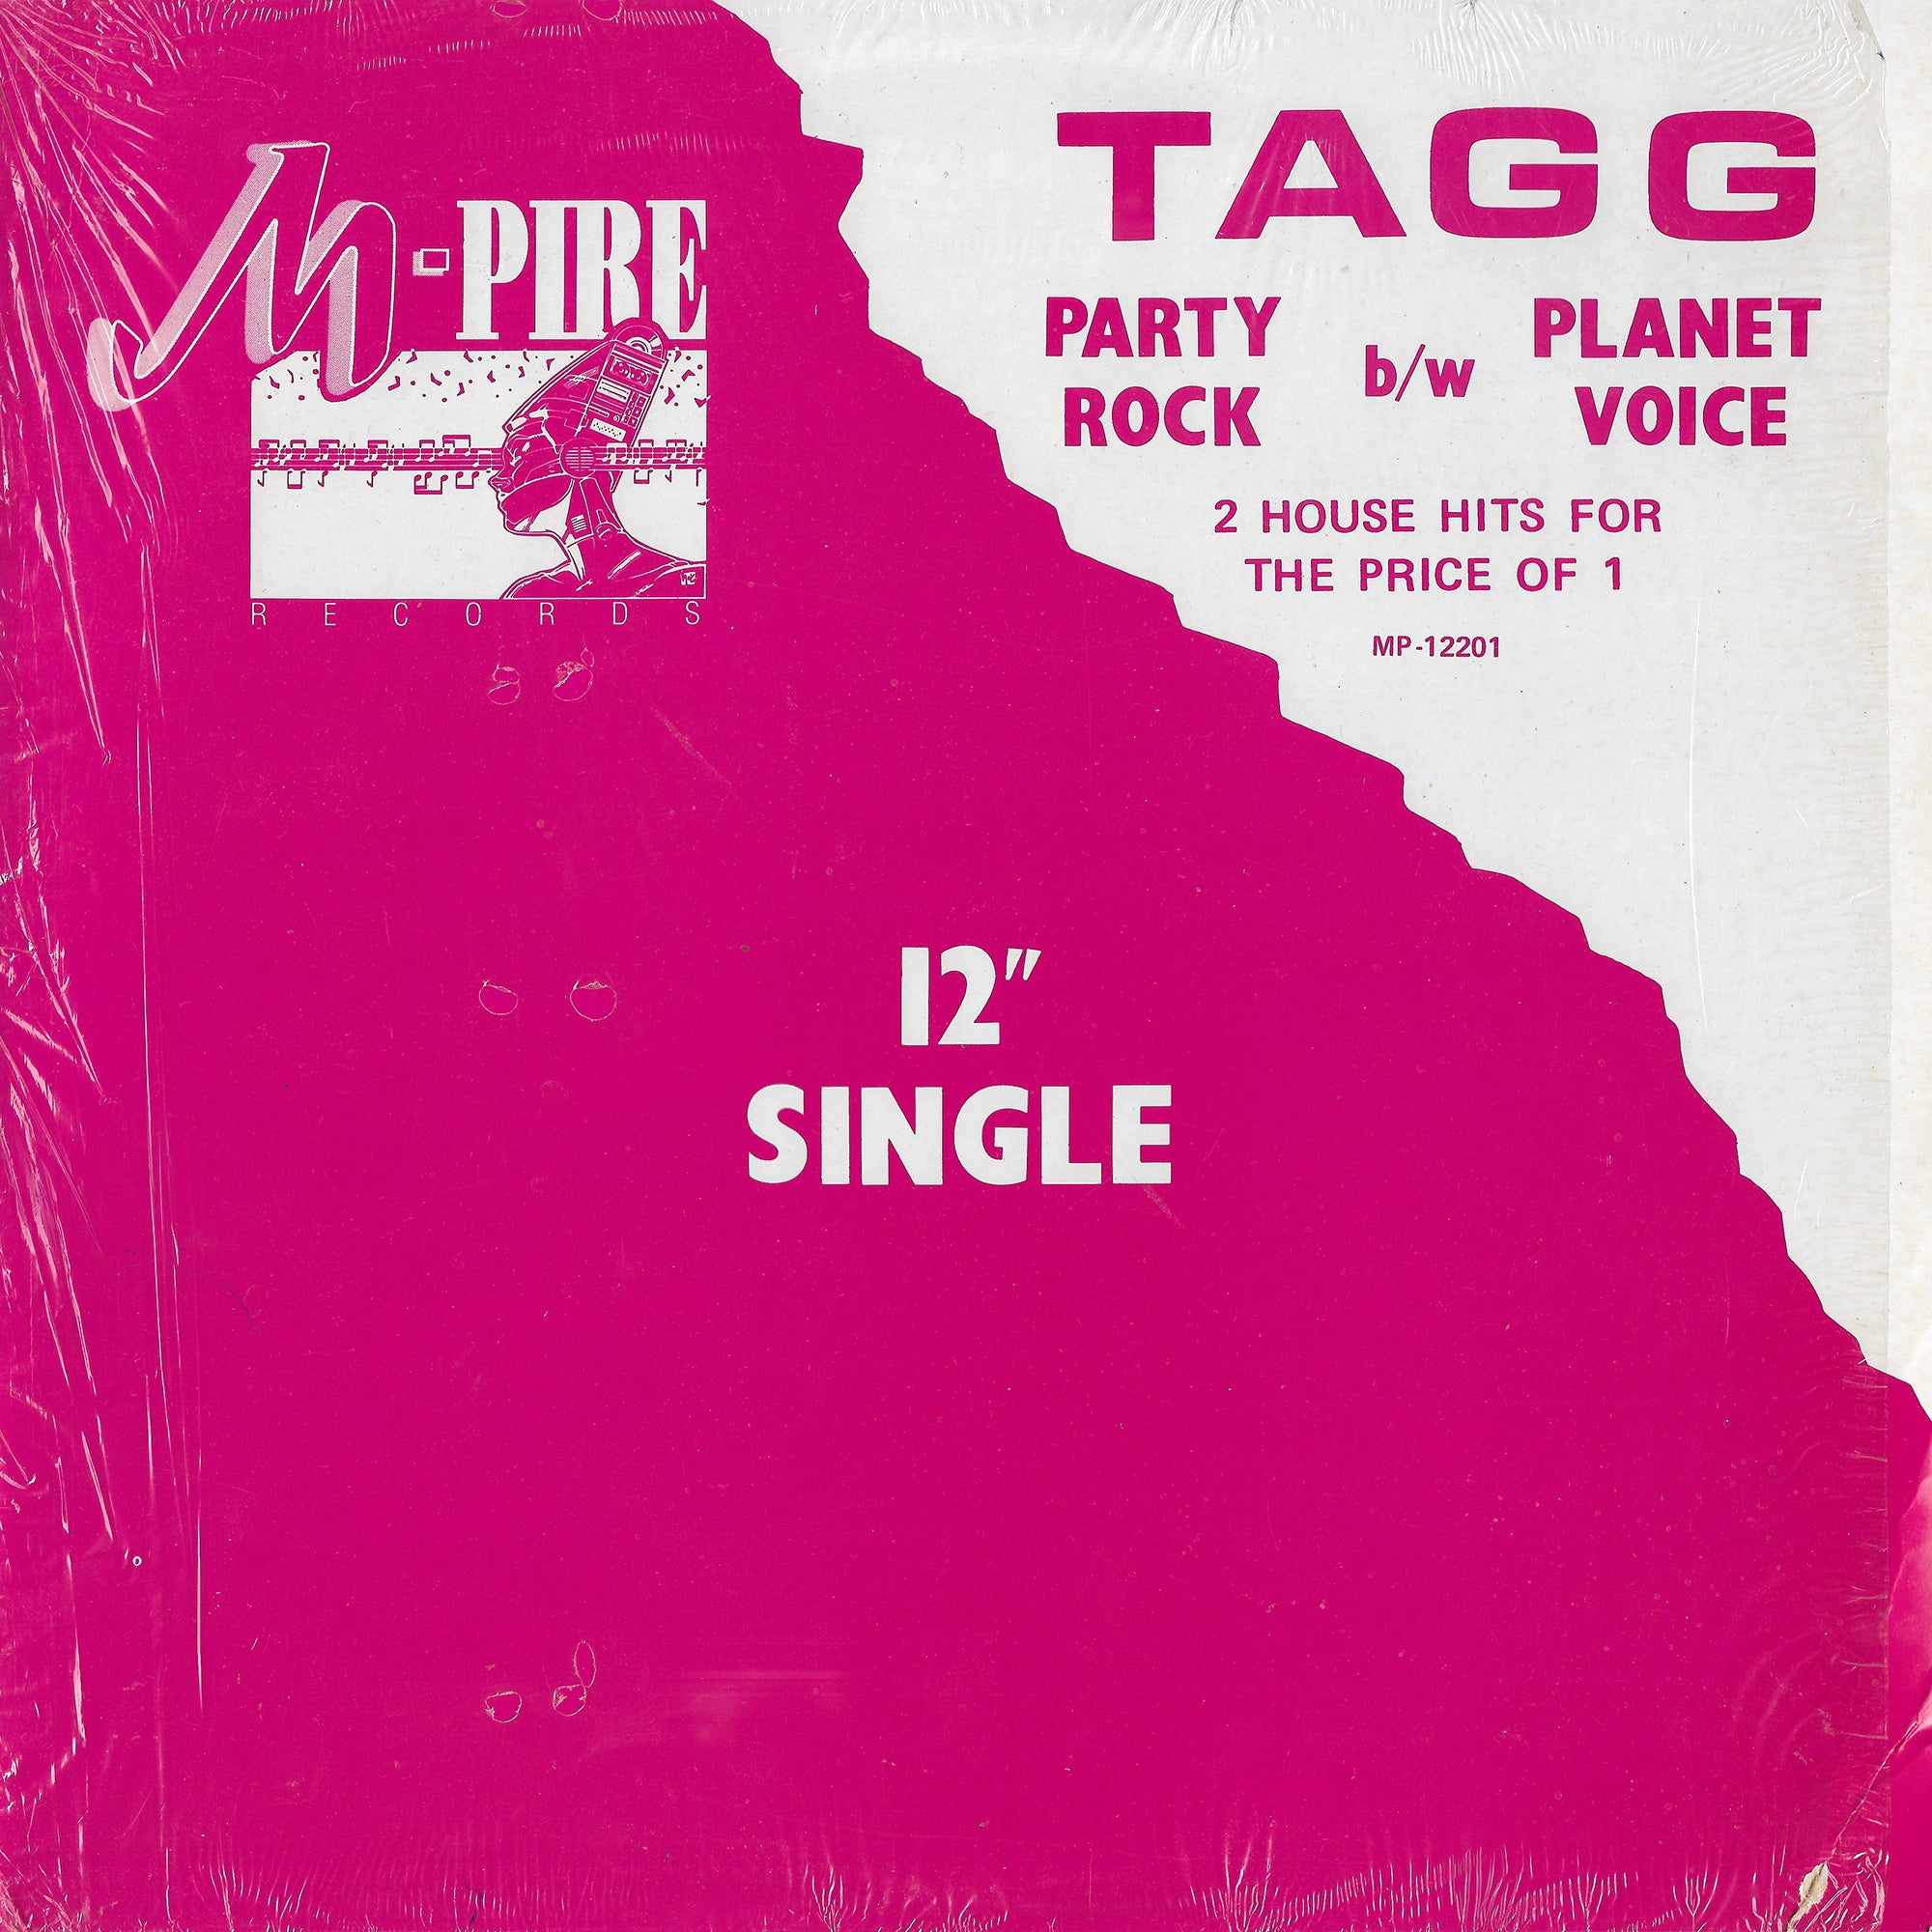 Tagg - Party Rock / Planet Voice